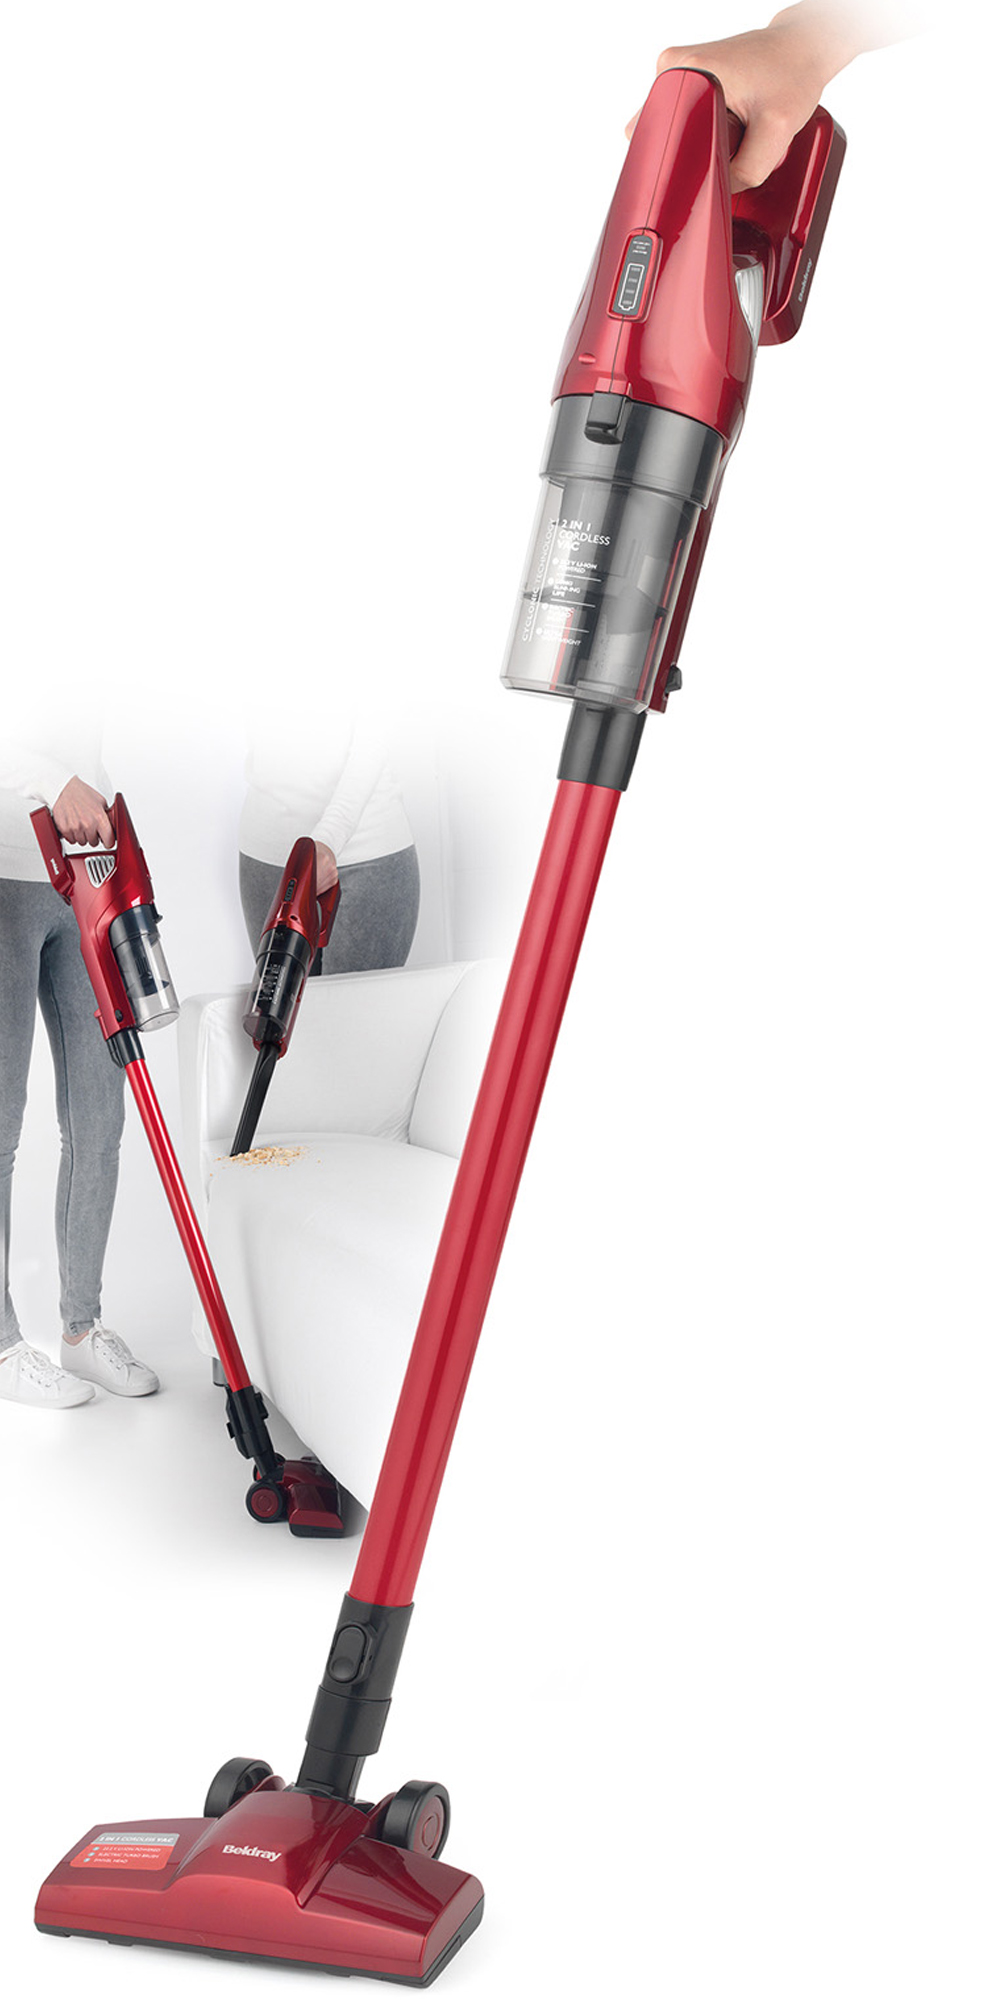 beldray 2 in 1 cordless lightweight handheld stick vacuum cleaner 22 2v red beldray. Black Bedroom Furniture Sets. Home Design Ideas